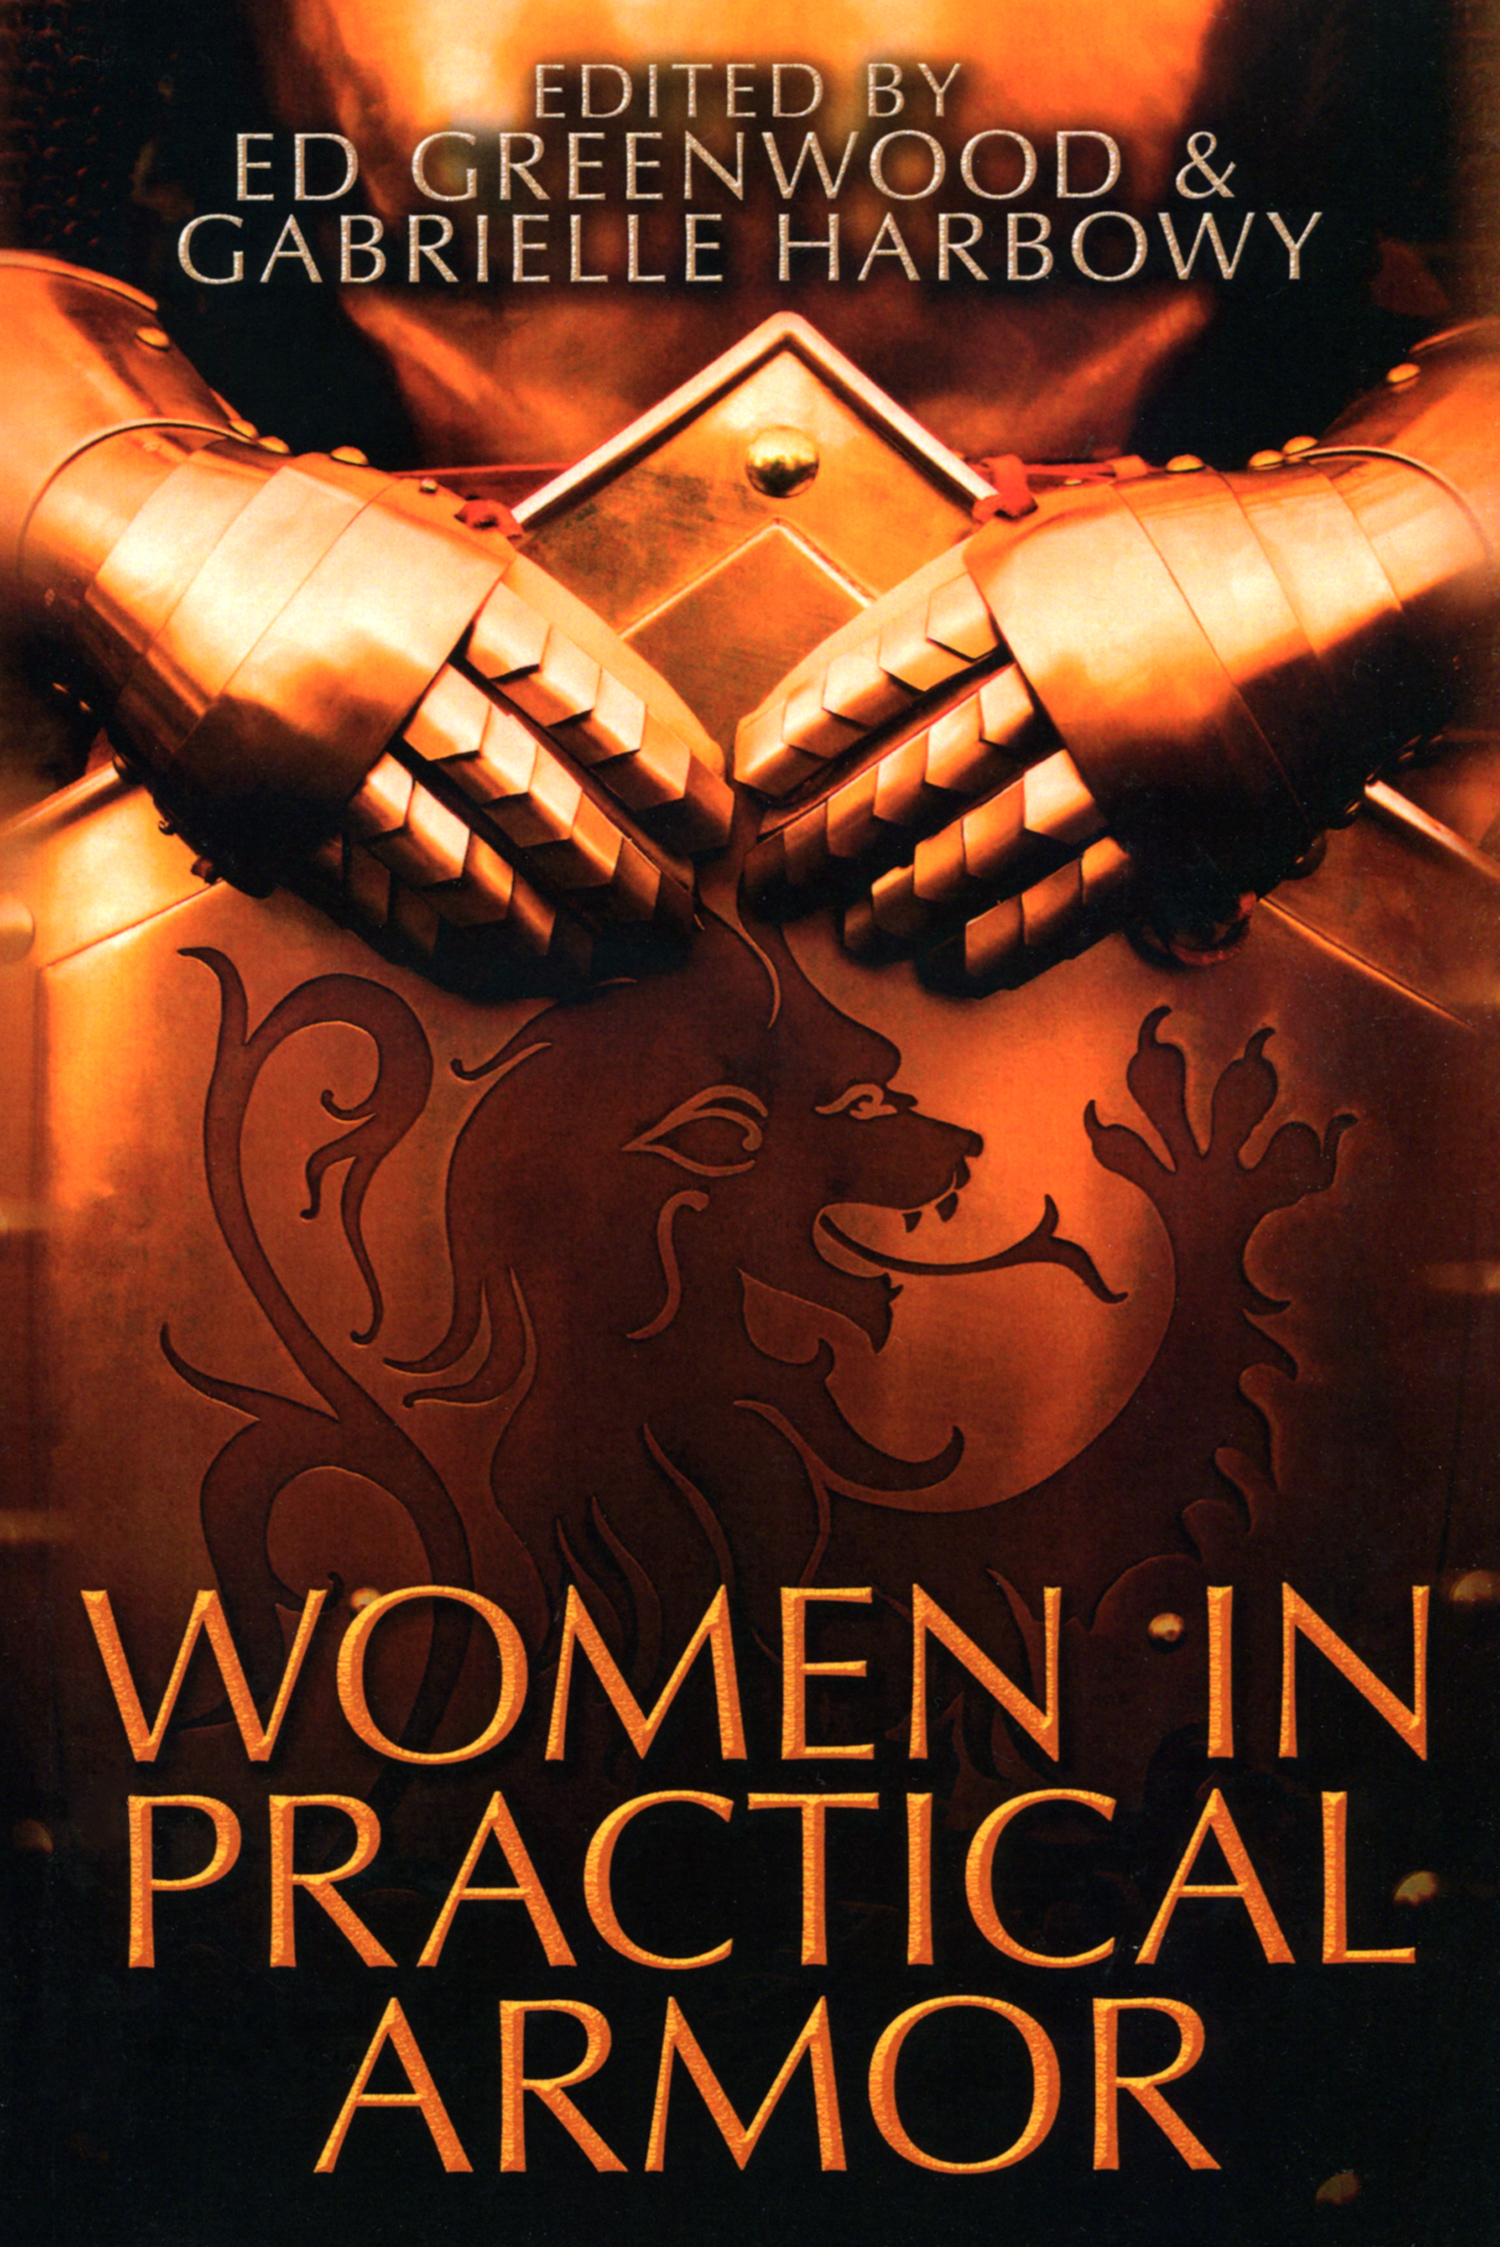 """Women in Practical Armor"" edited by Ed Greenwood and Gabrielle Harbowy."